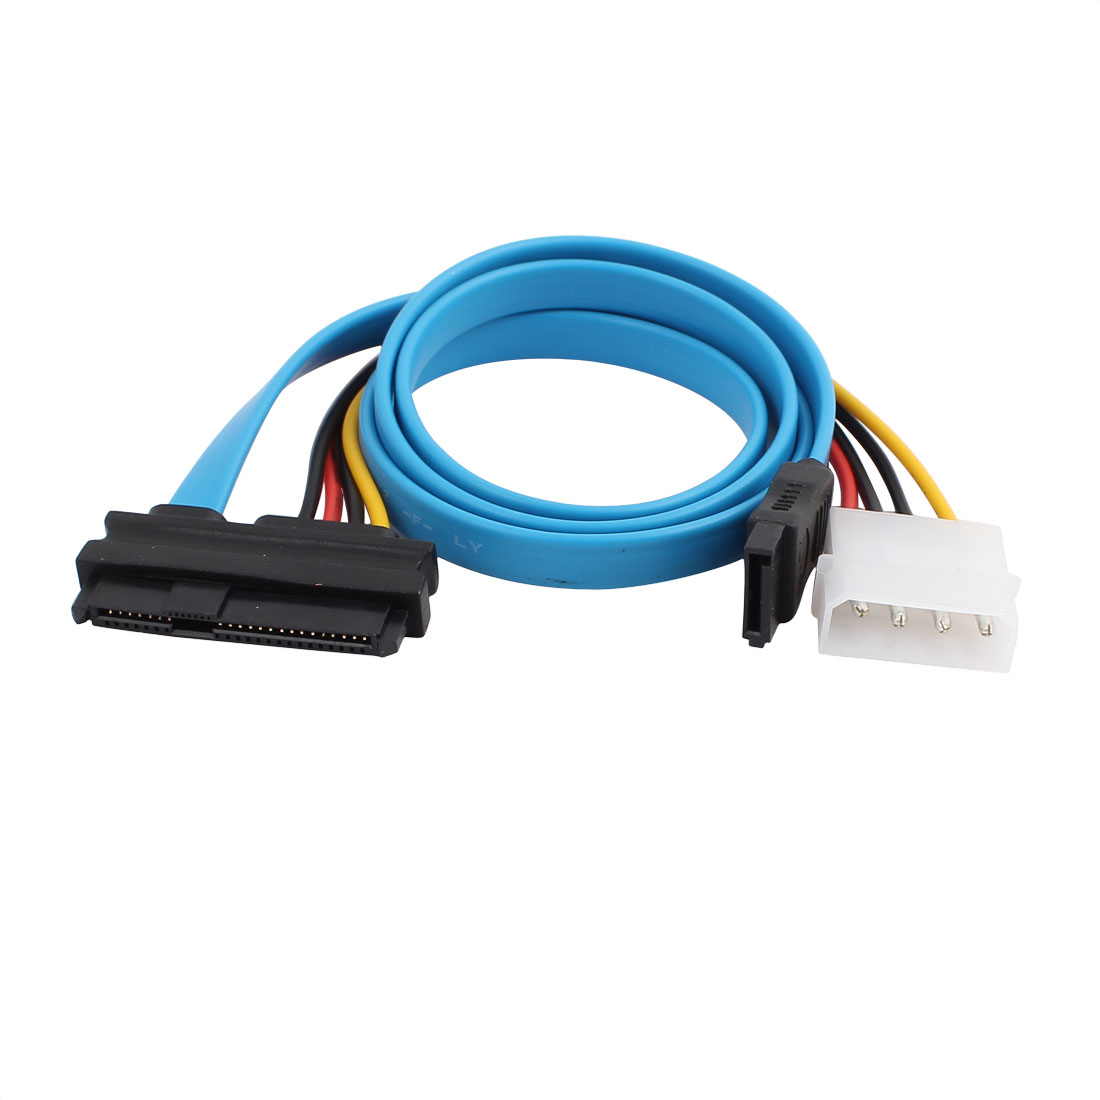 SAS Serial Attached SCSI SFF-8482 to 29-SATA Cable Adapter